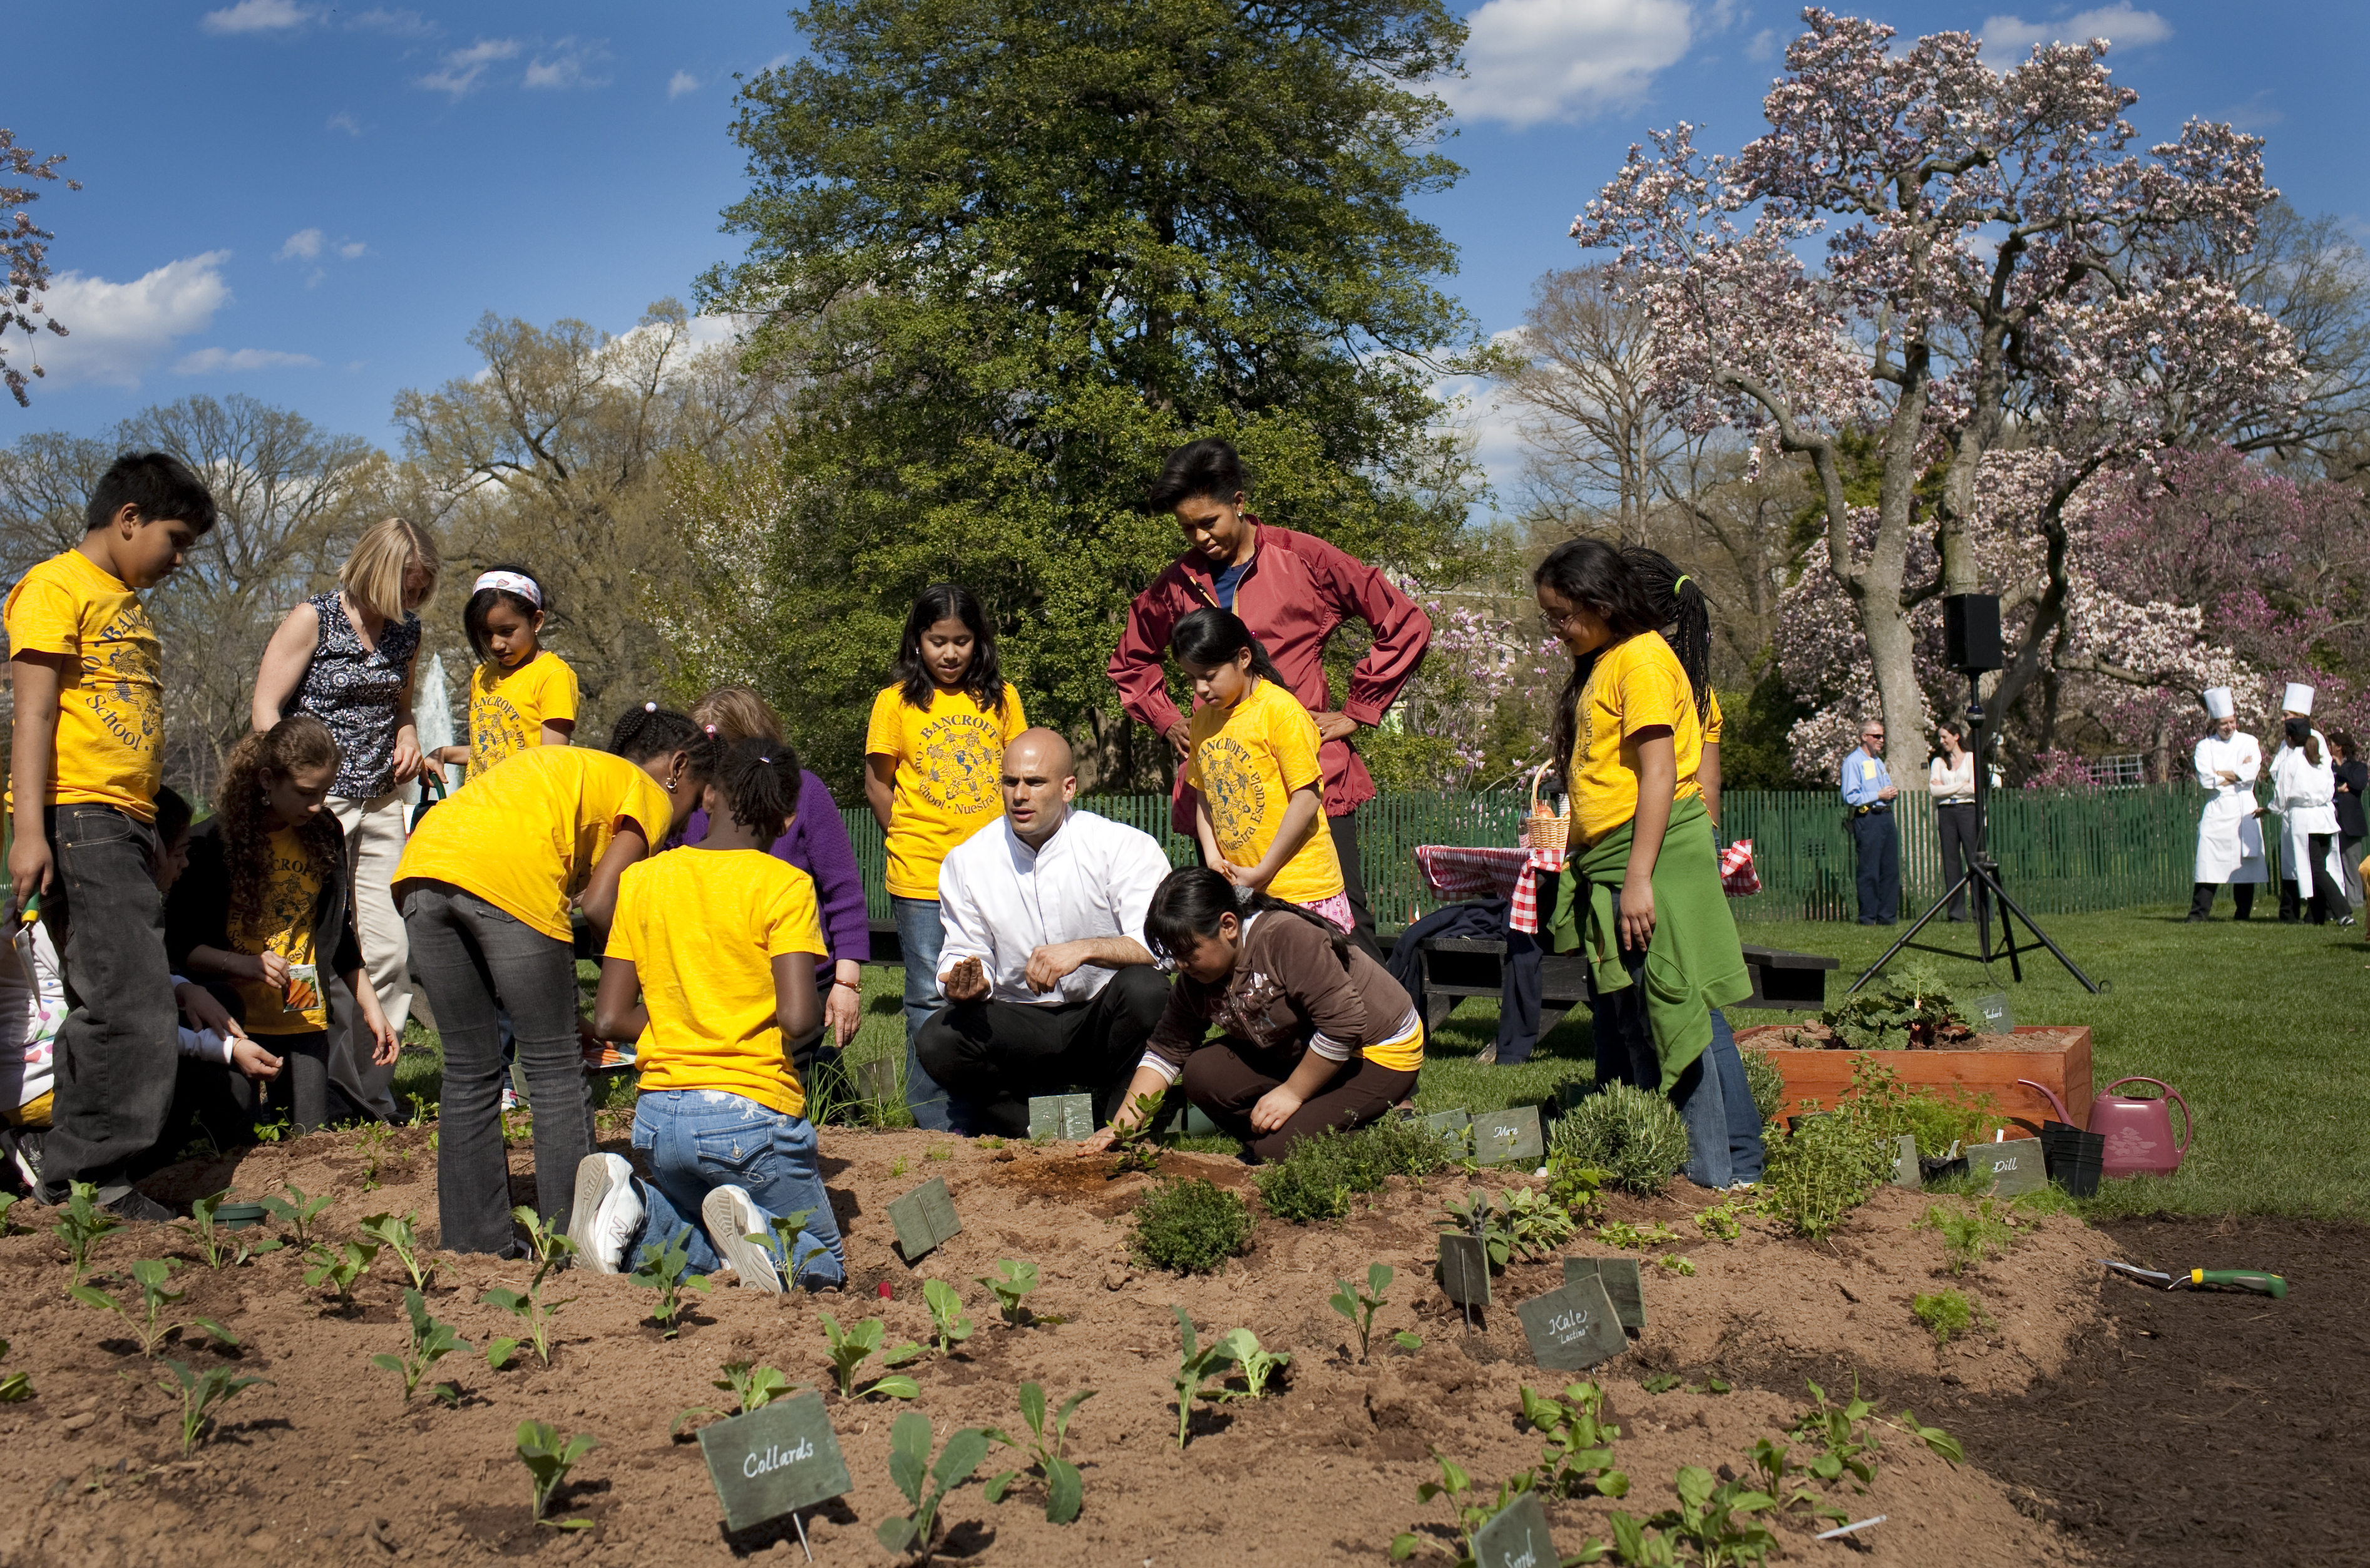 Children from the Bancroft school help First Lady Michelle Obama plant the White House Vegetable Garden. Official White House Photo by Samantha Appleton